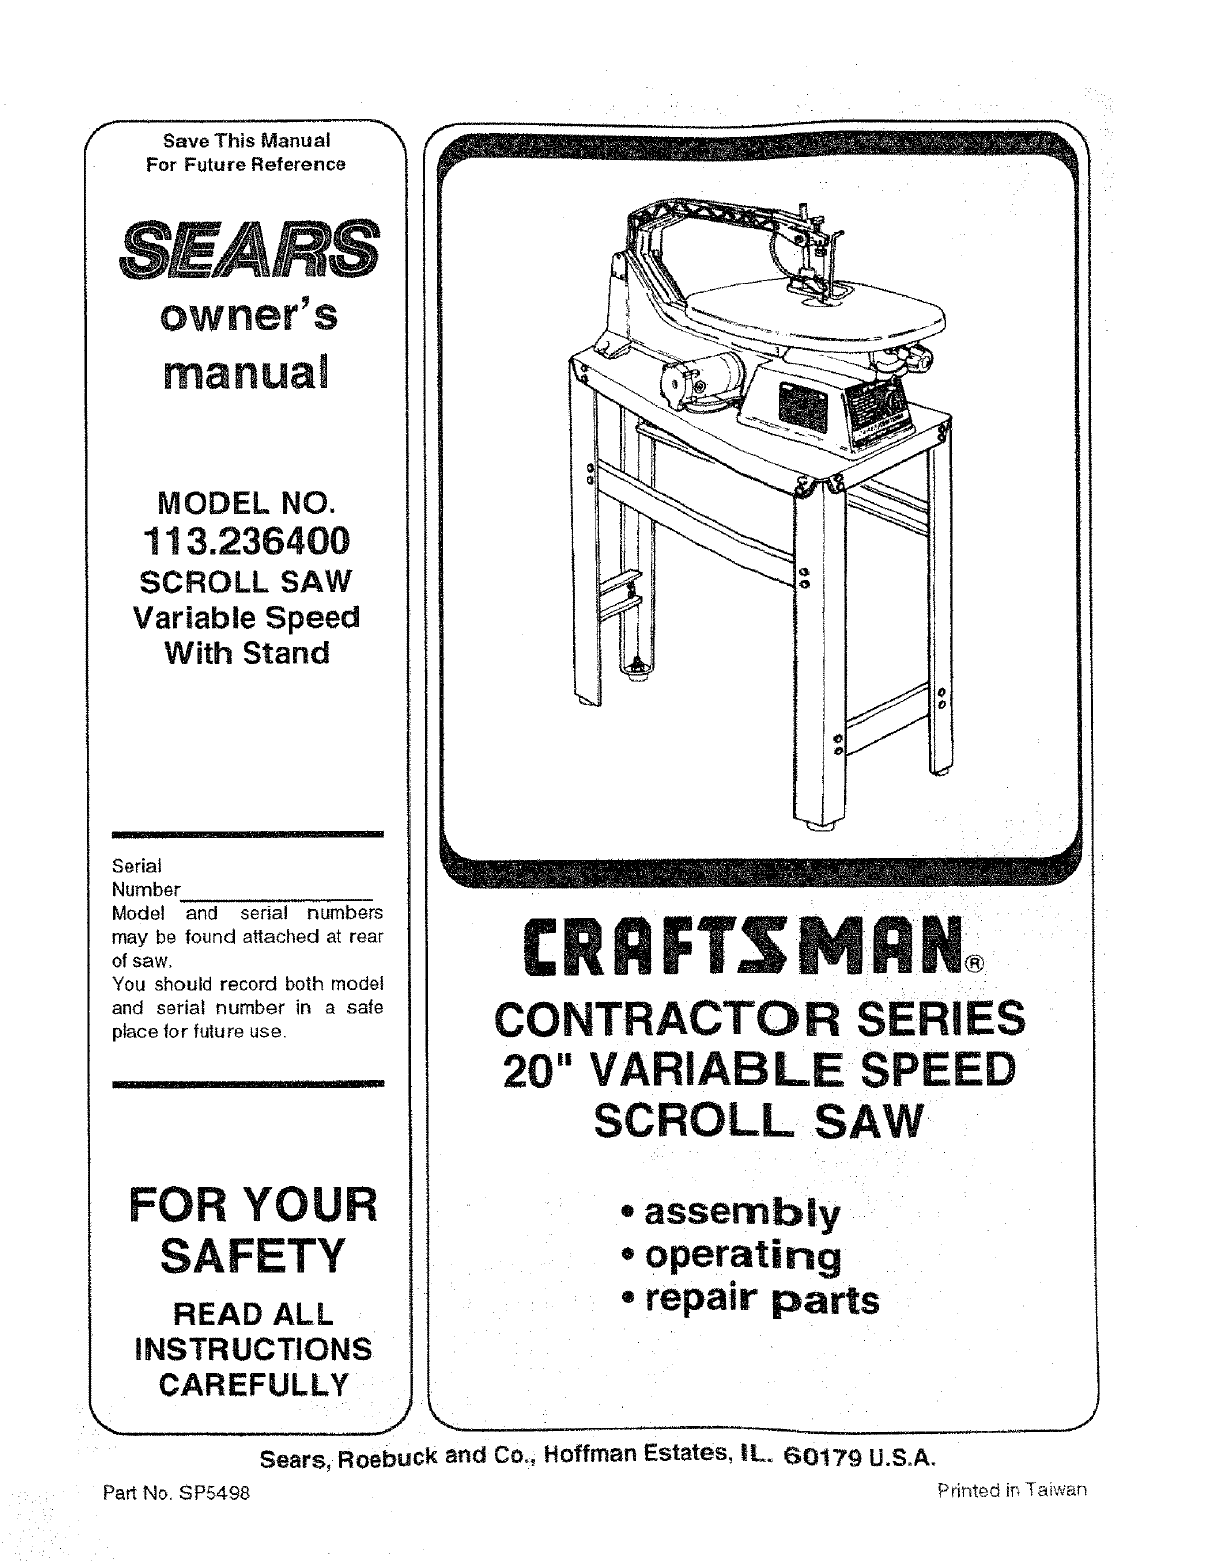 Craftsman 113236400 user manual scroll saw manuals and guides l0804184 greentooth Images